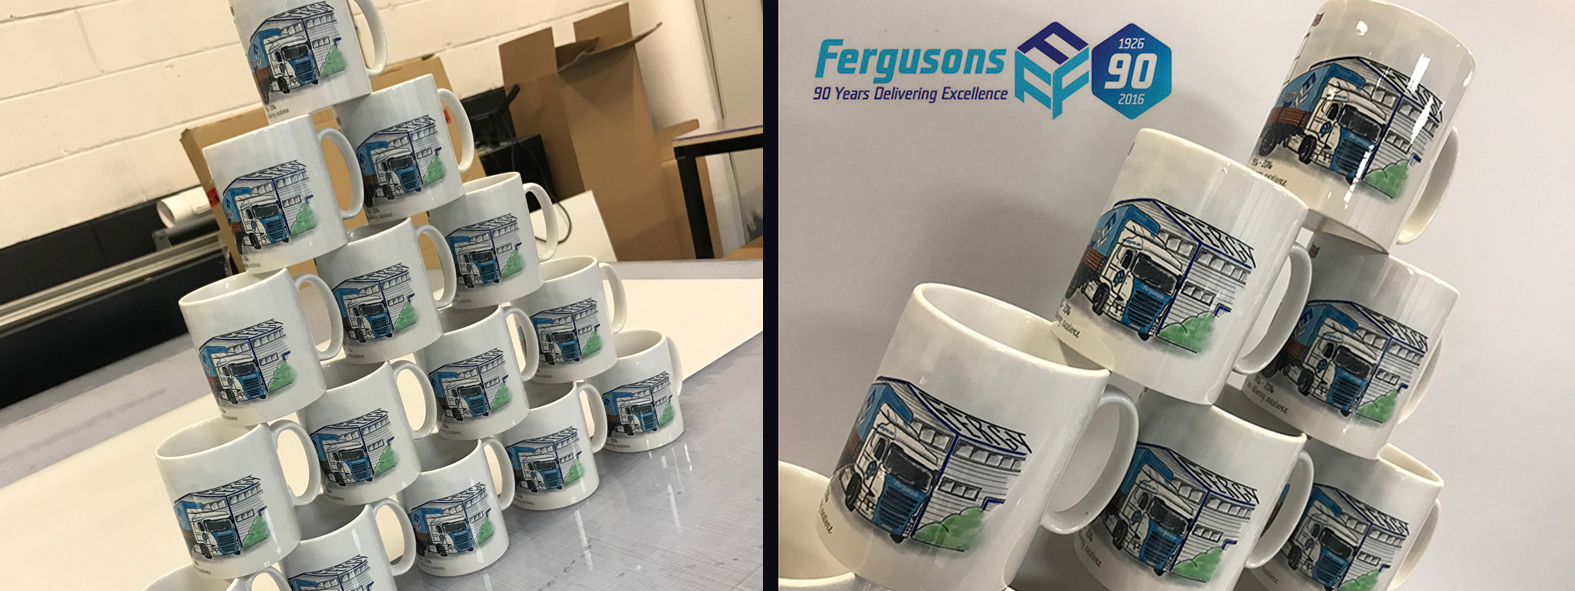 Fergusons Transport Printed Mugs